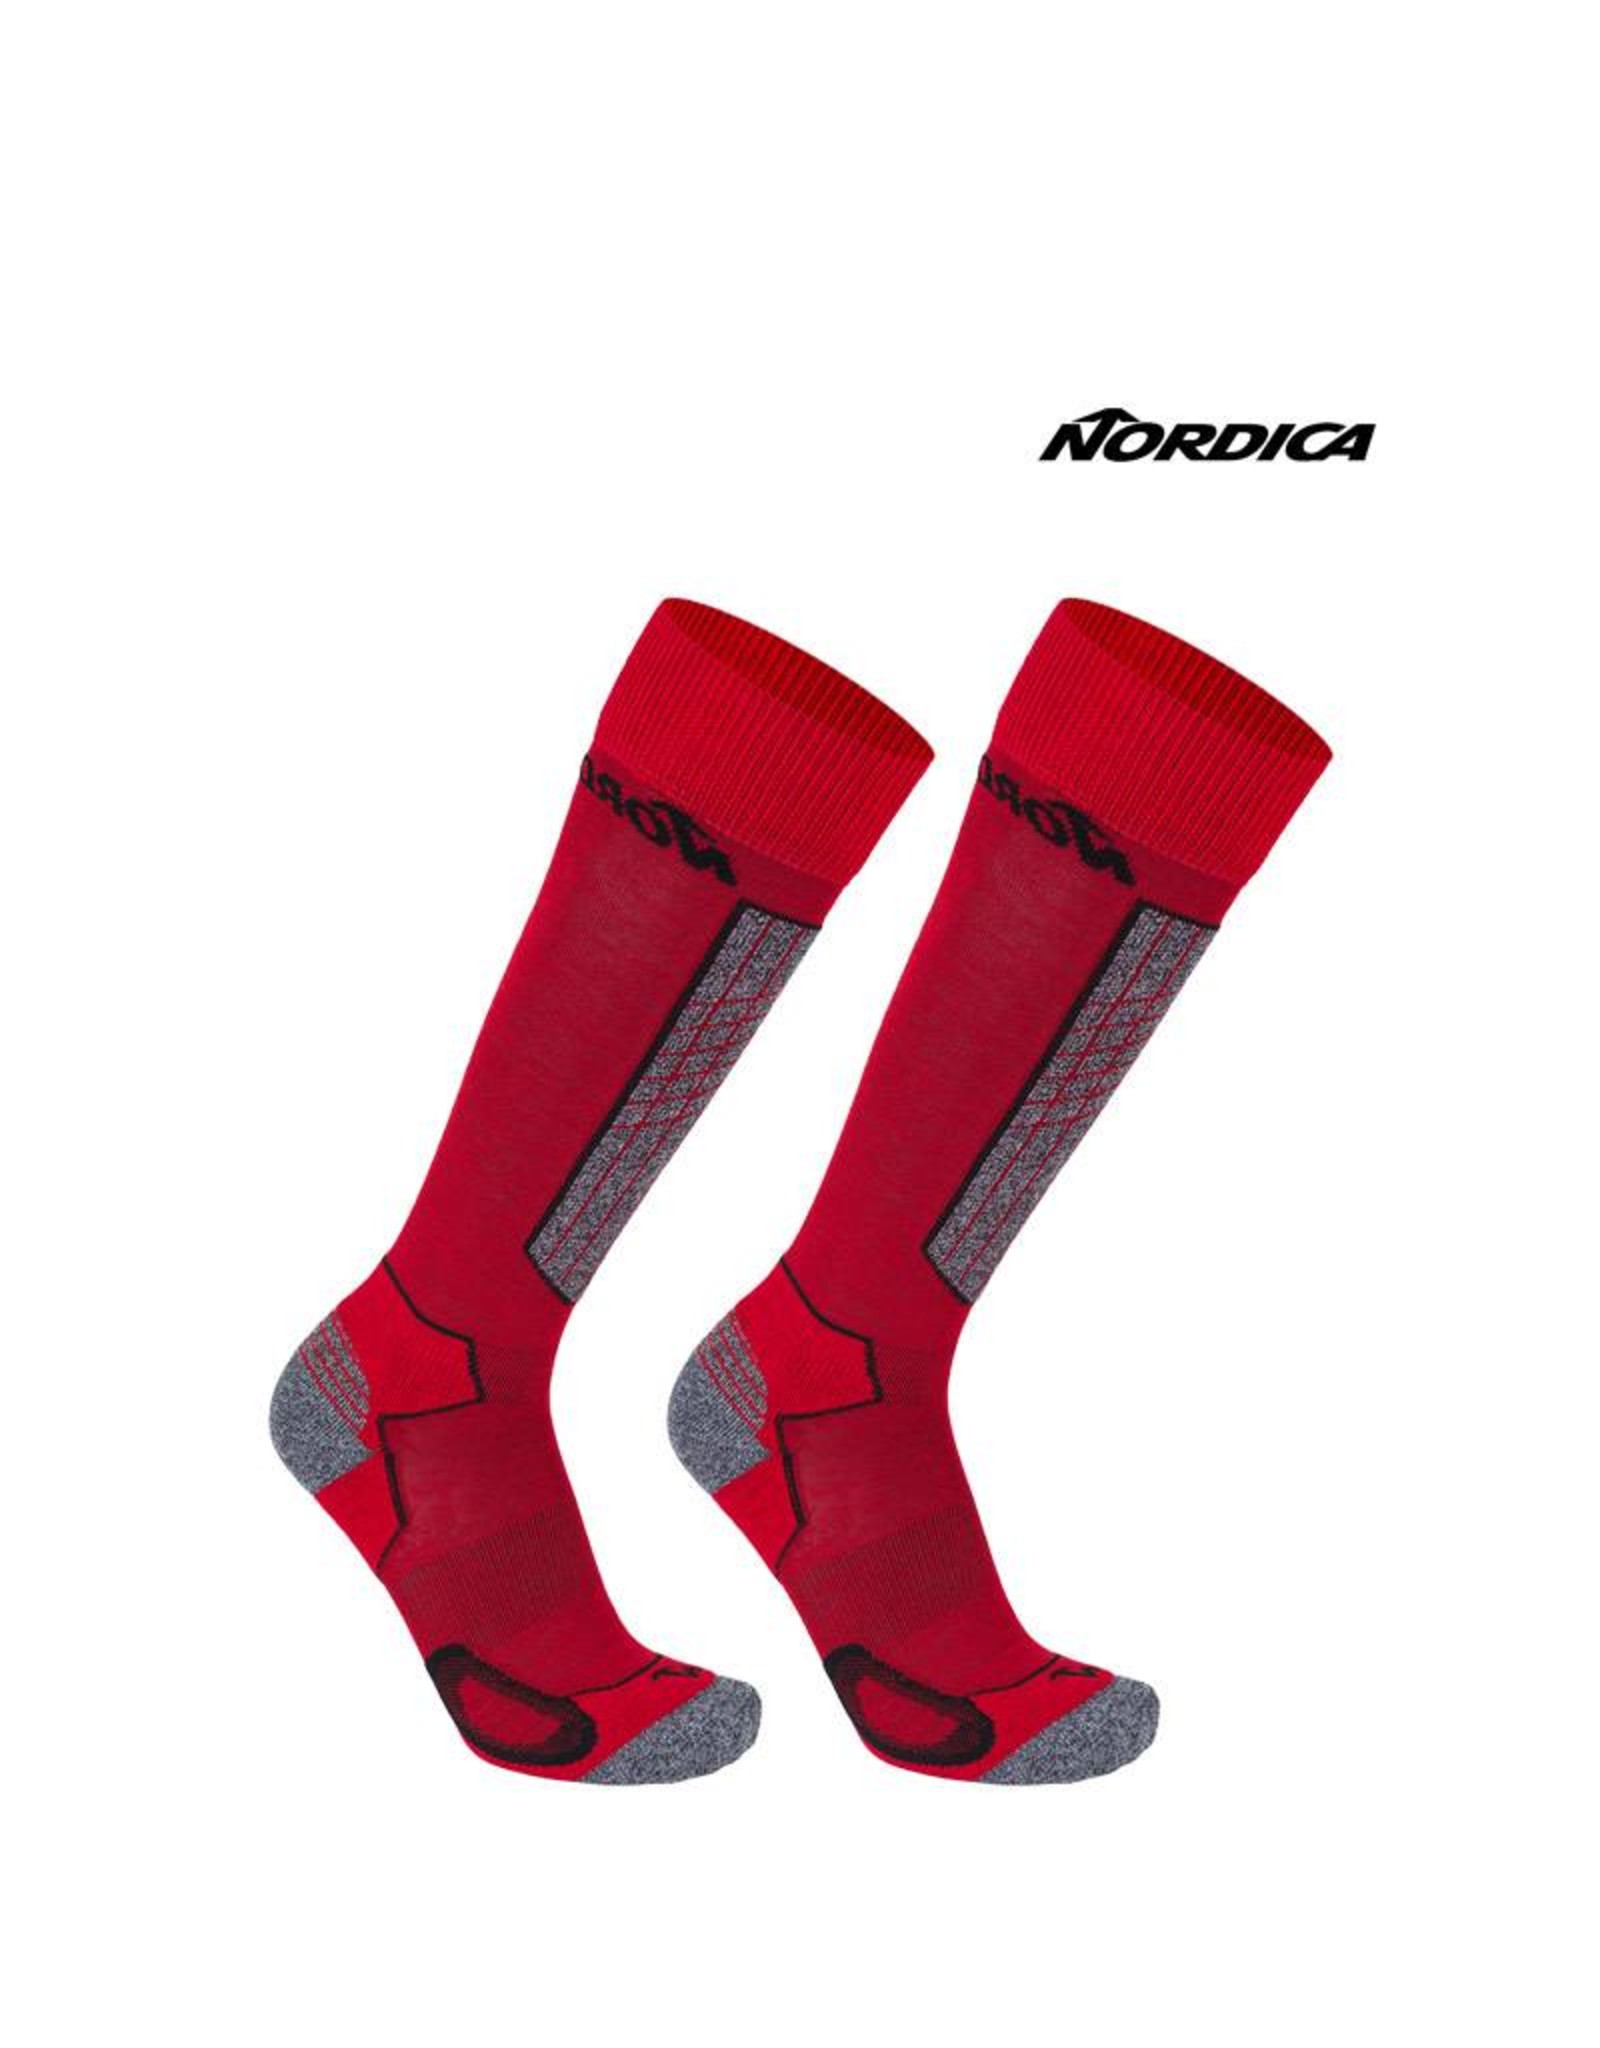 NORDICA NORDICA SKISOKKEN High Performance Rood/Zwart 43-46